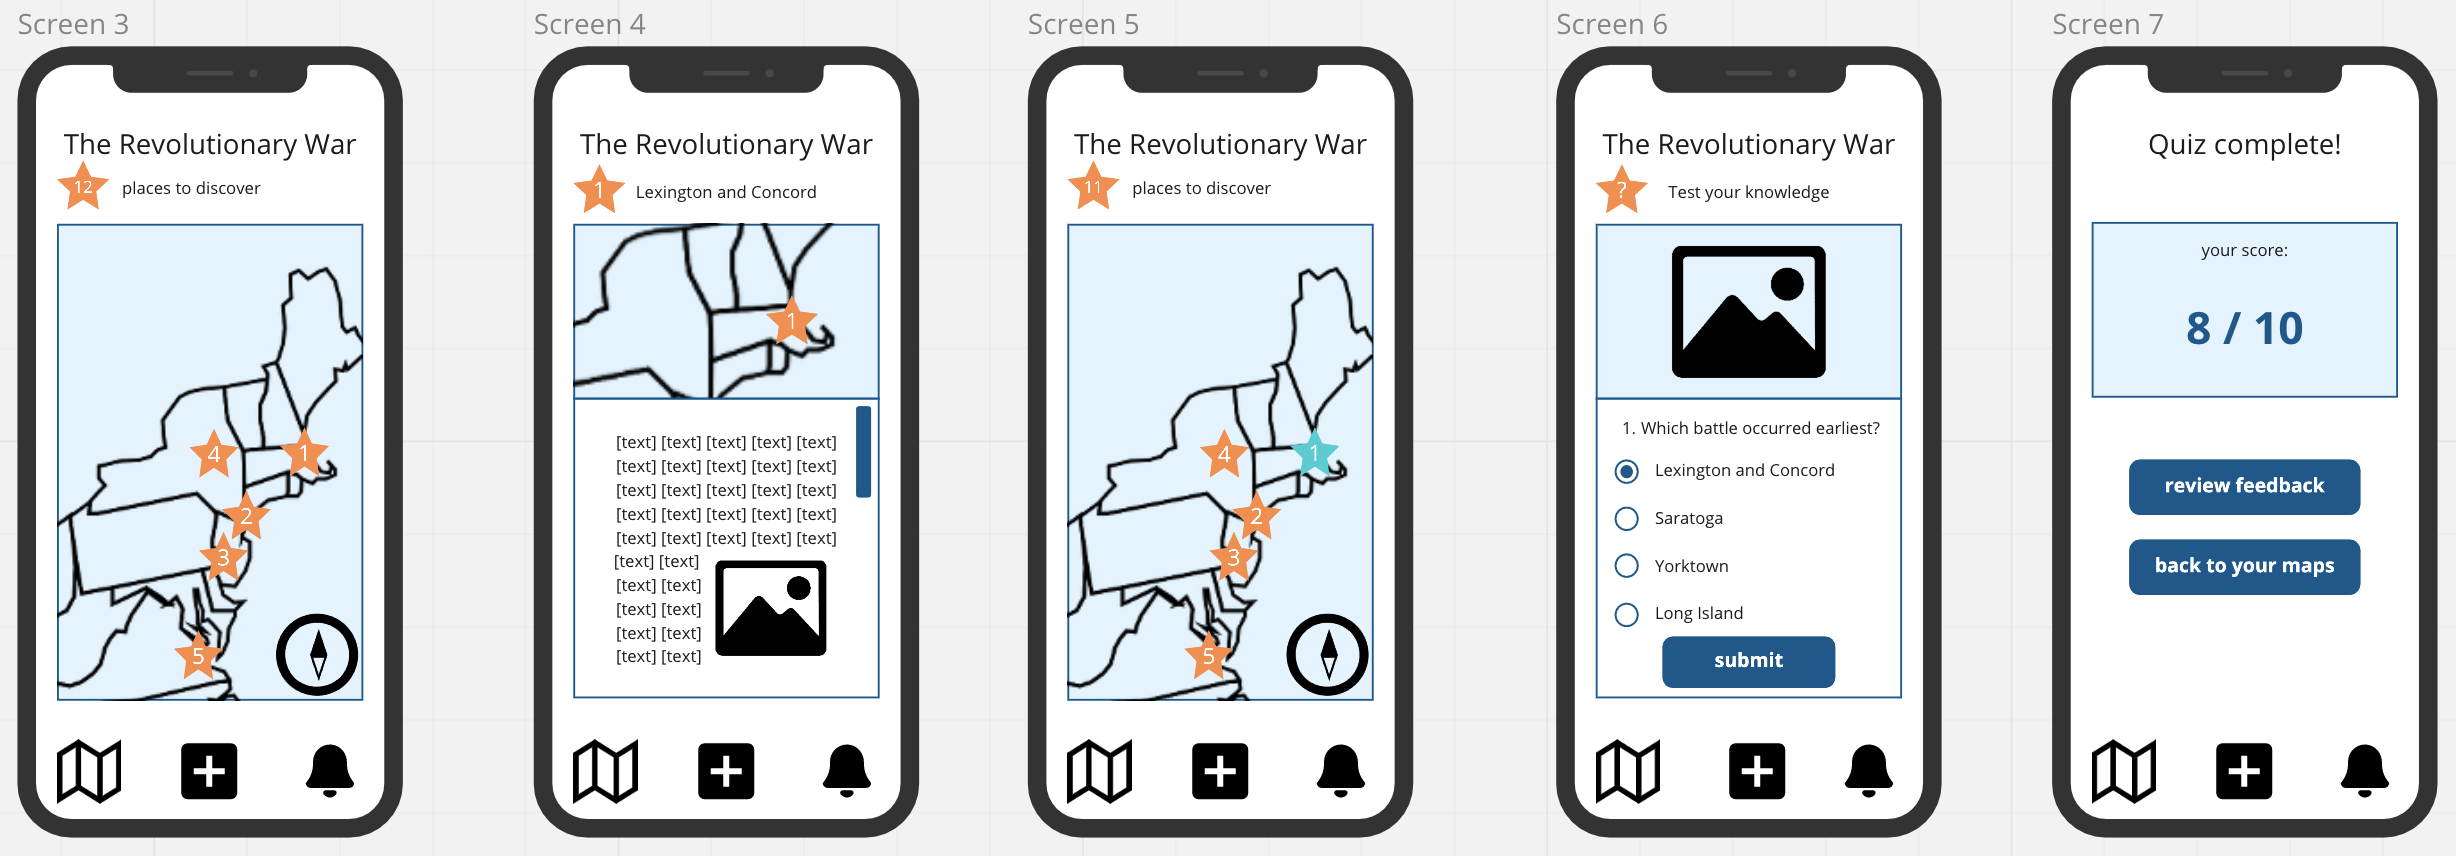 Digital low-fidelity prototypes demonstrating how to view a map and take a quiz on Cartograph